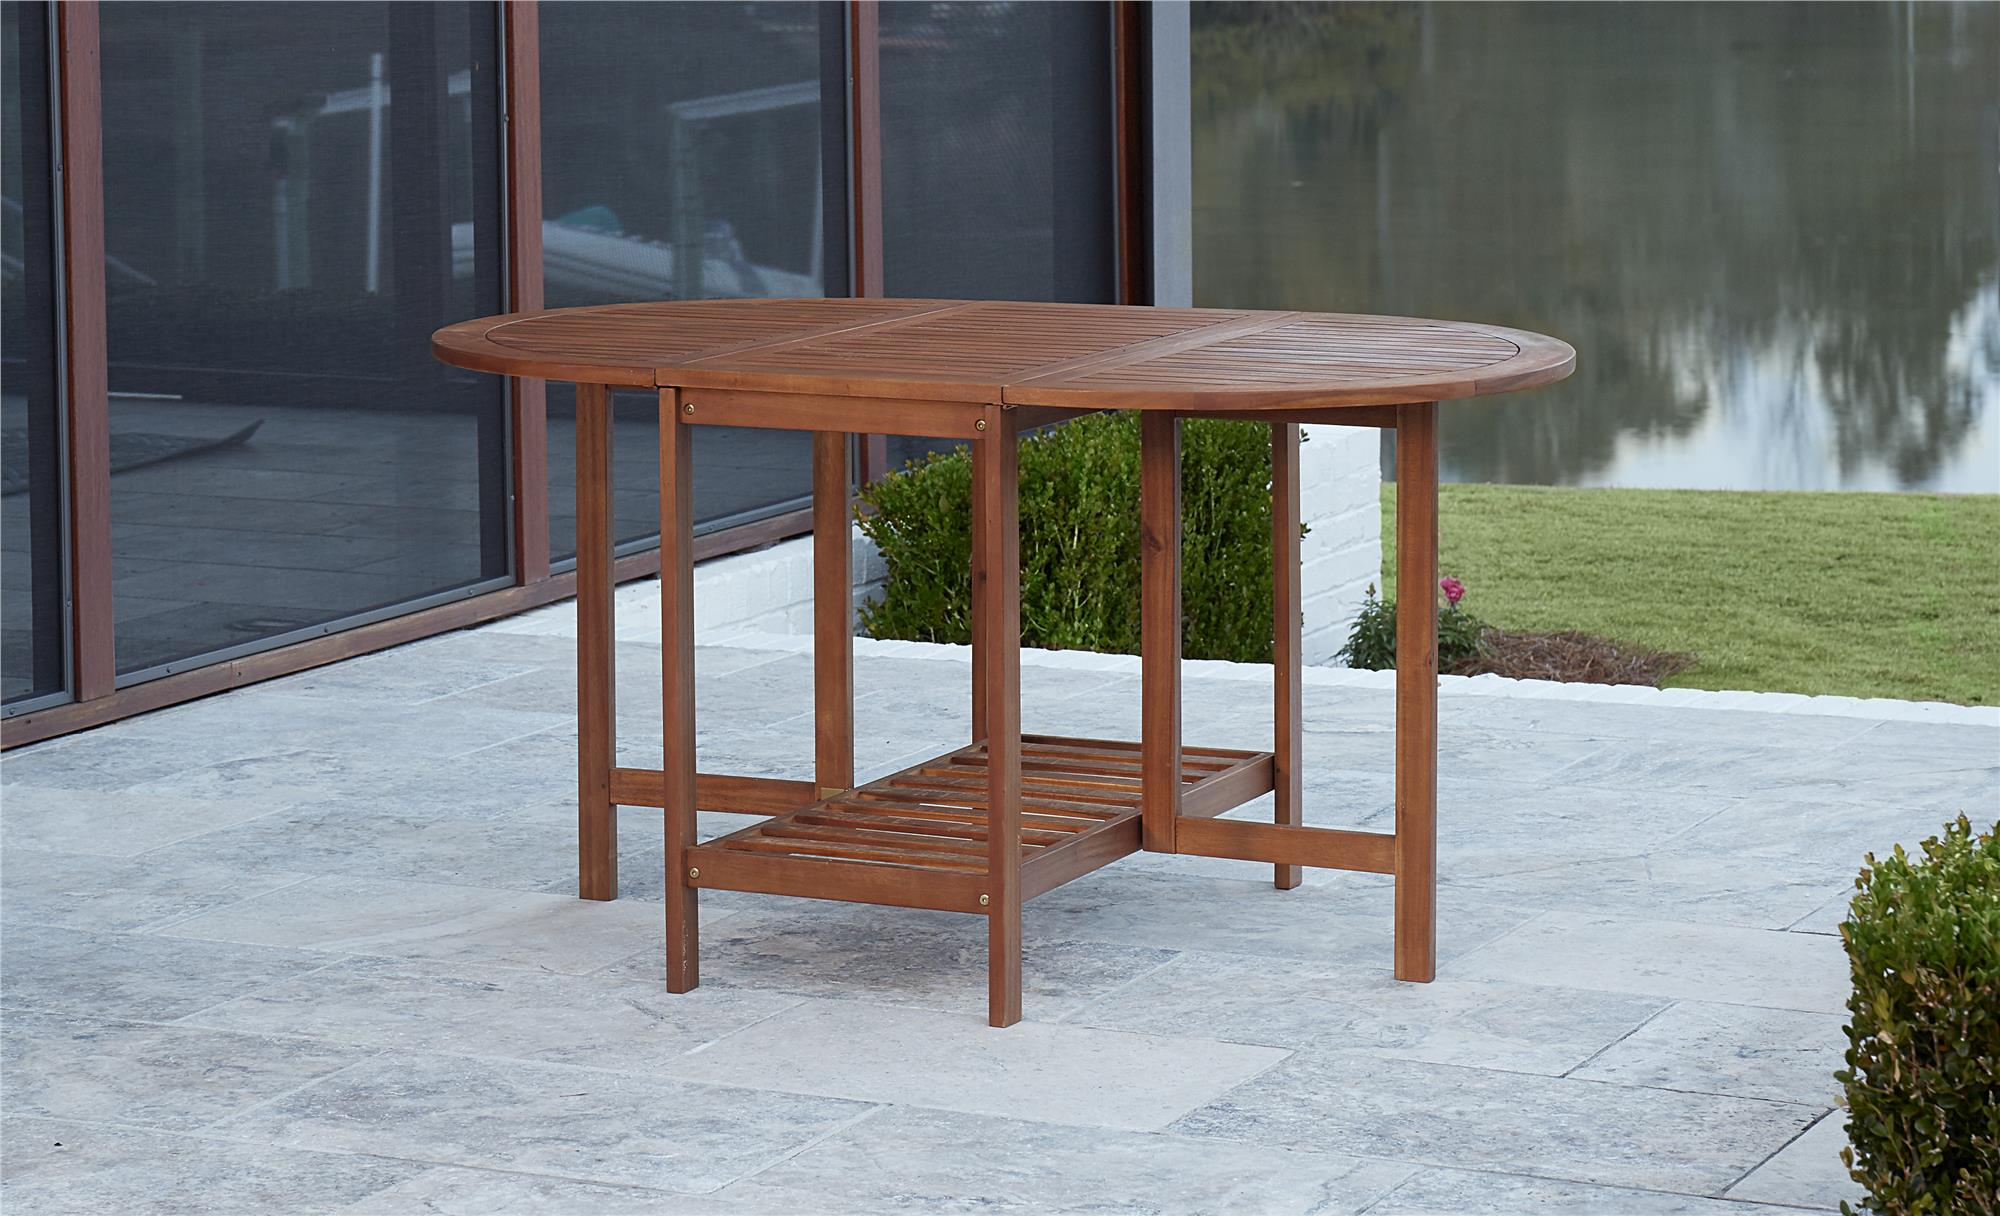 COSCO Outdoor Living Acacia Wood Folding Drop Leaf Patio Dining Table With  Chair Storage, Brown   Walmart.com